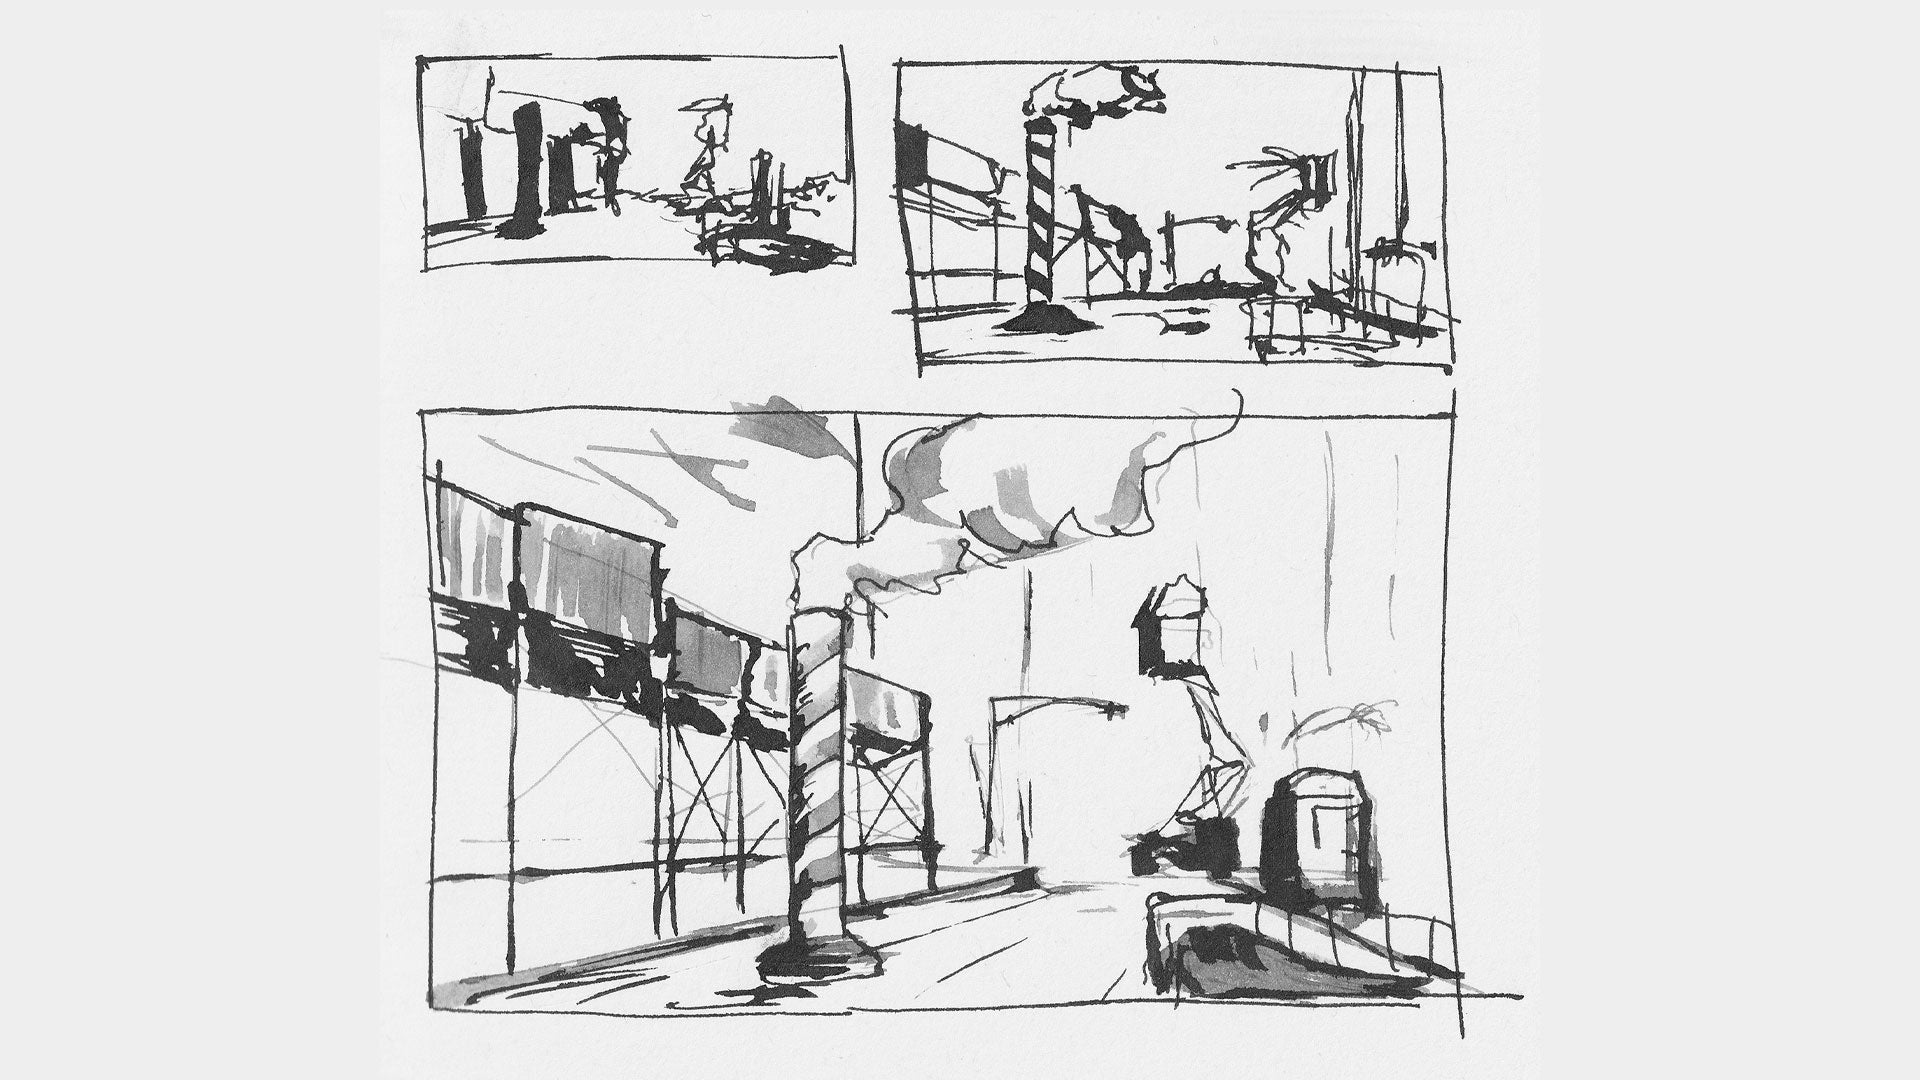 sketching the scene